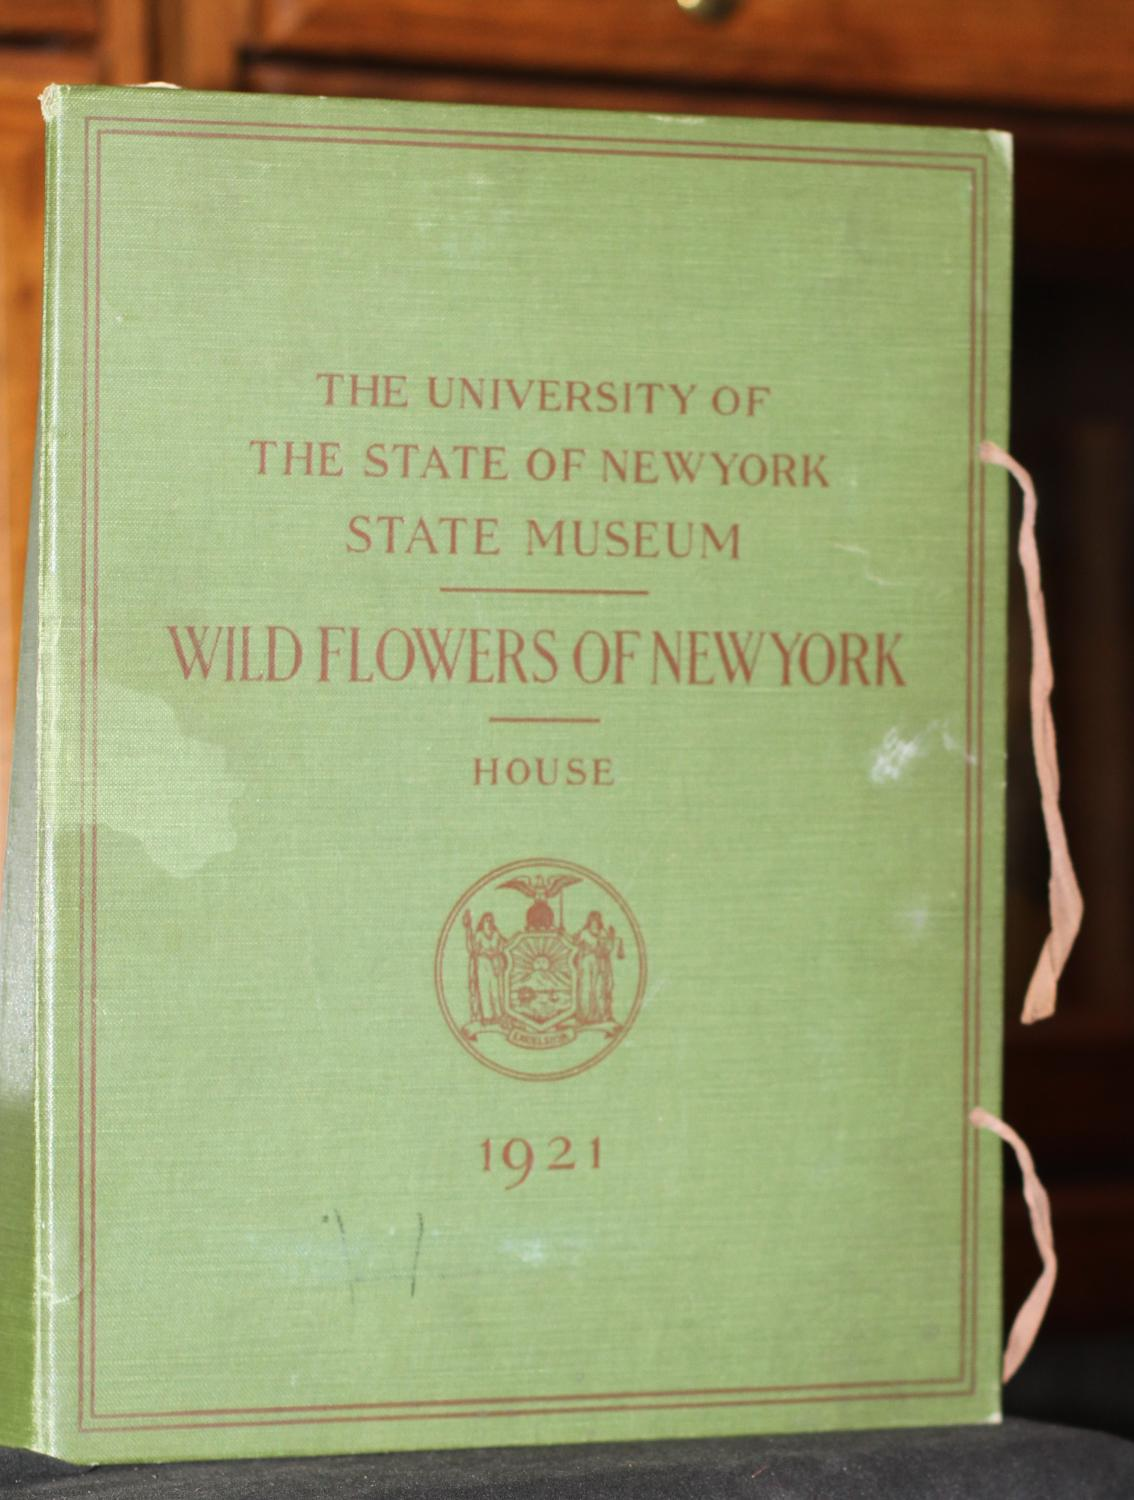 Wildflowers of New York University of the State of New York State Museum Very Good Hardcover